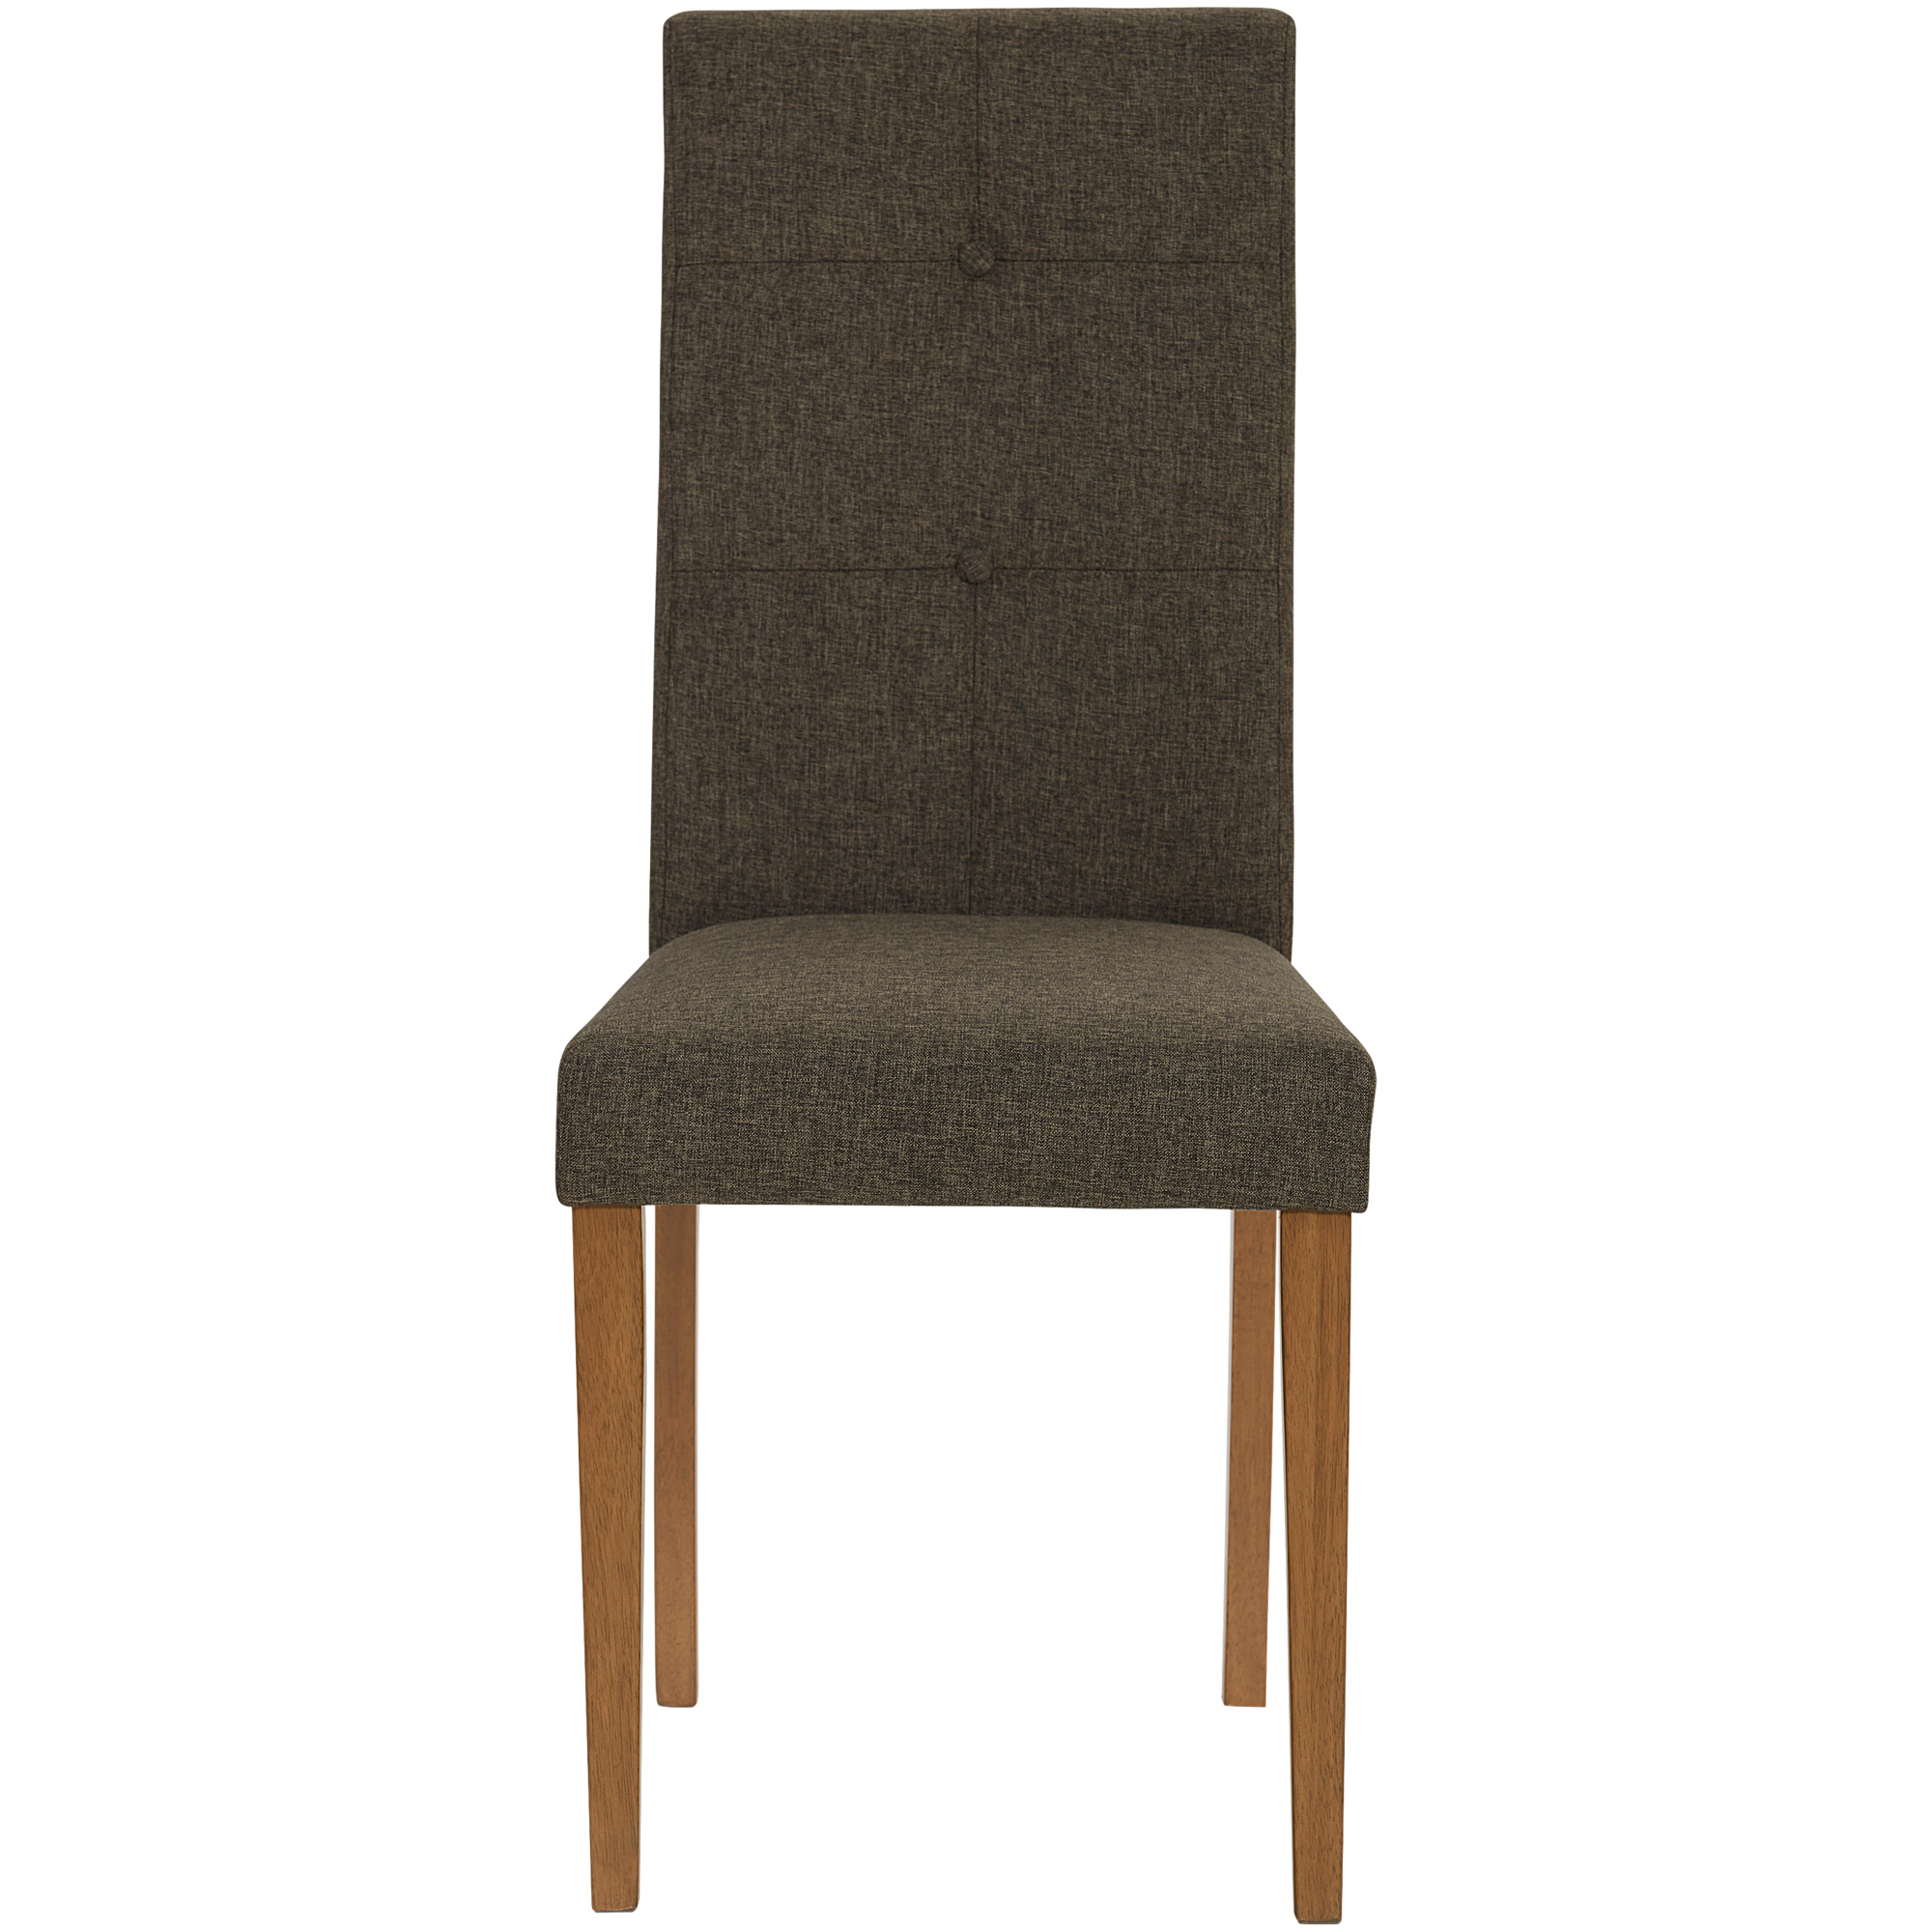 Progressive Furniture Inc. | Arcade Charcoal Gray Upholstered Dining Chair